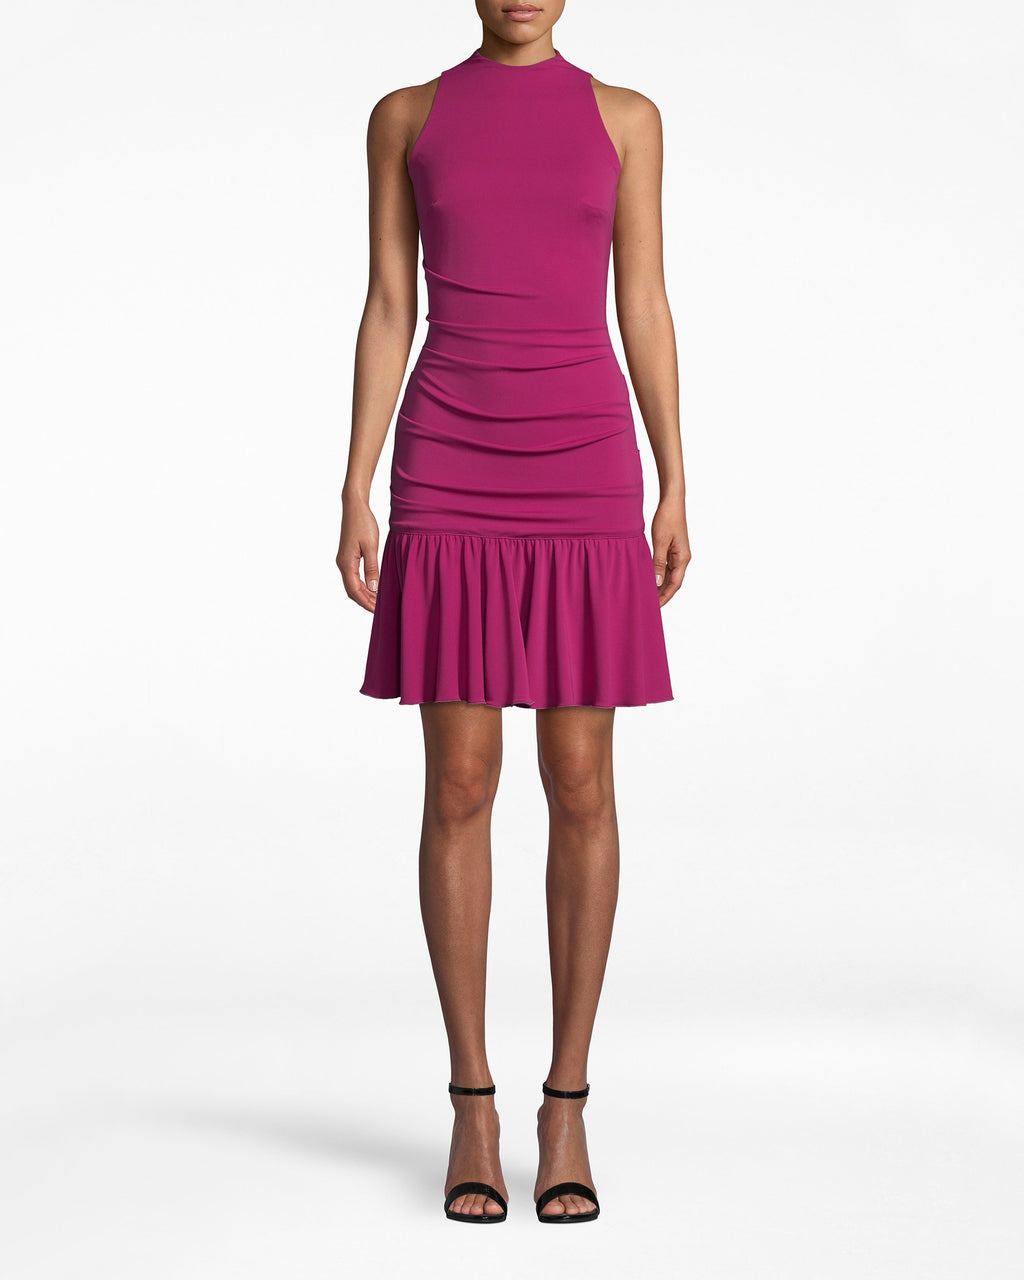 BI10159 - STRETCHY MATTE JERSEY SLEEVELESS FLARE DRESS - dresses - midi - Stop and flare. So many elements are eye-catching: like the mock neck, ruched body, ruffled skirt, and flirty back cutout. Exposed back buttons and zipper for closure.